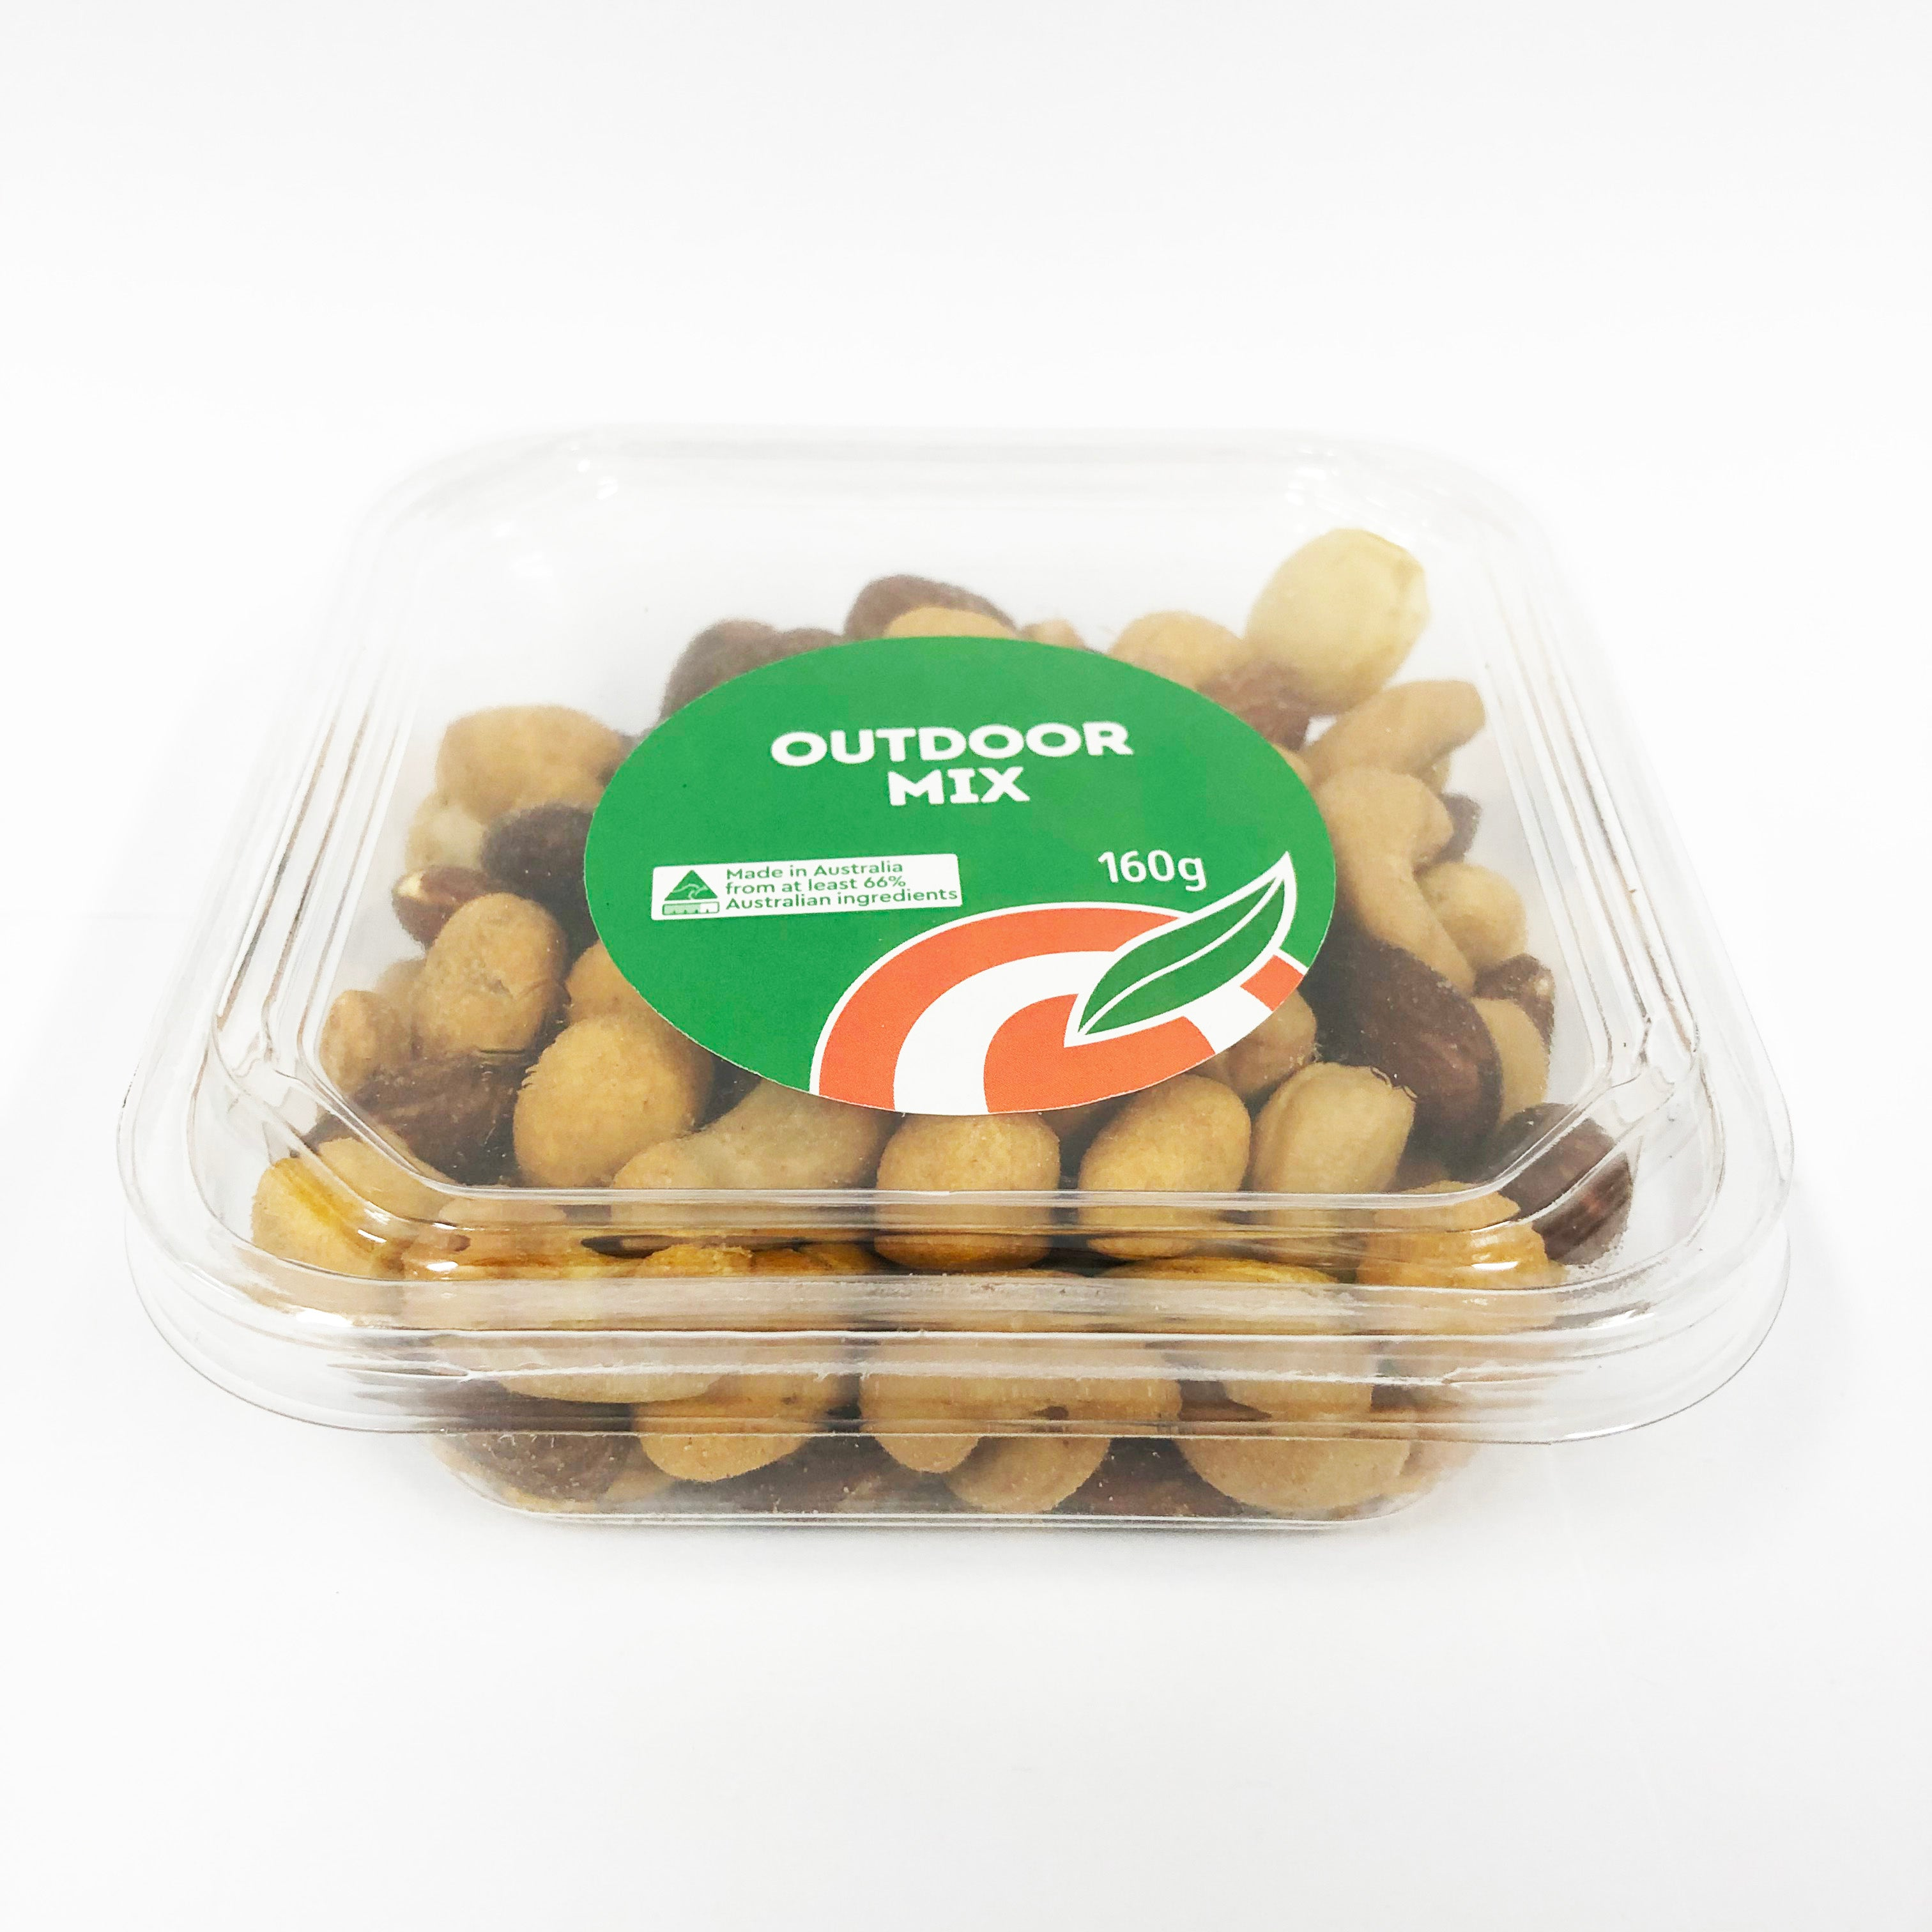 Outdoor Mix 160g (Box of 12)